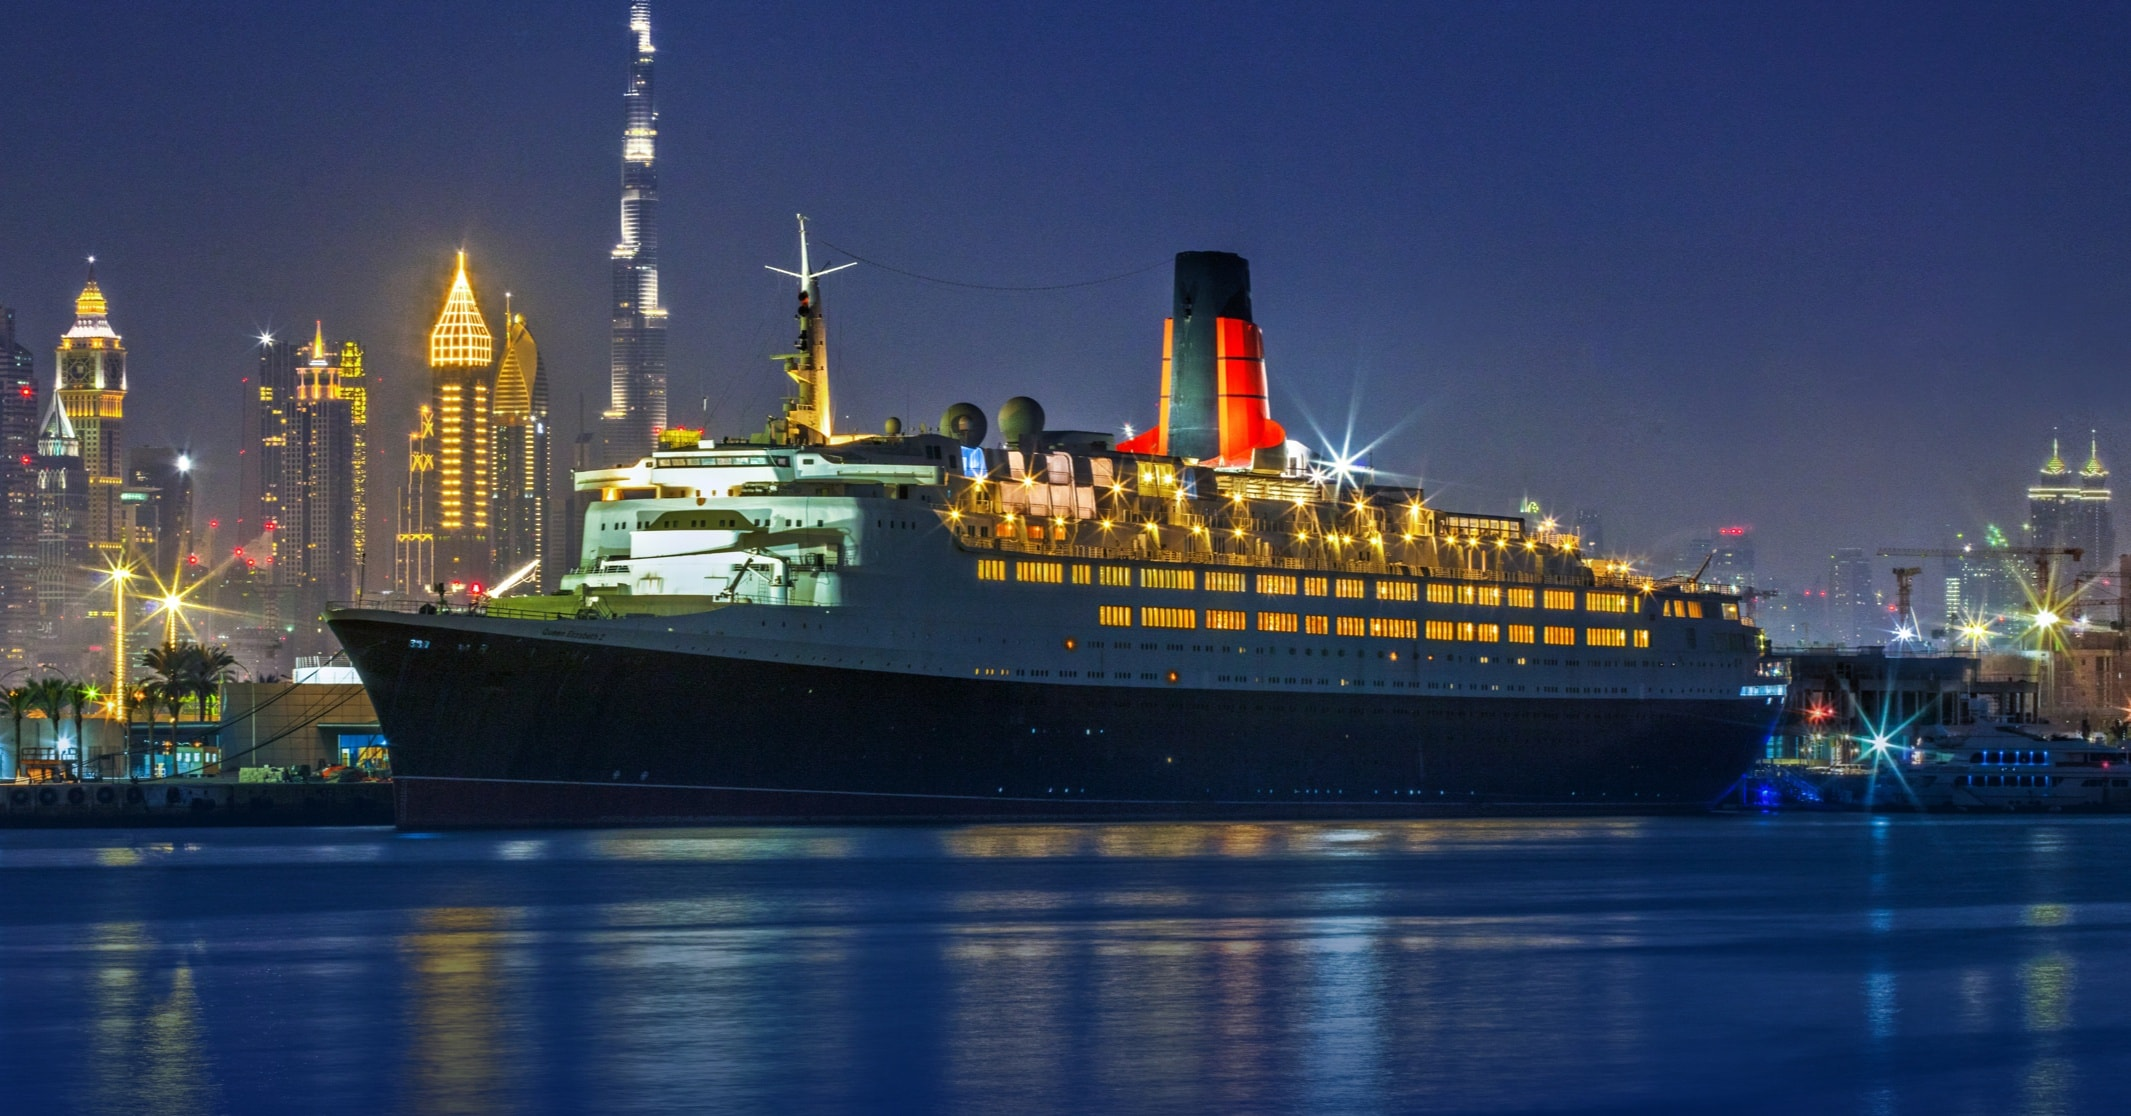 queen-elizabeth-2-ship-cruise-ship-qe2-dubai-hotels-